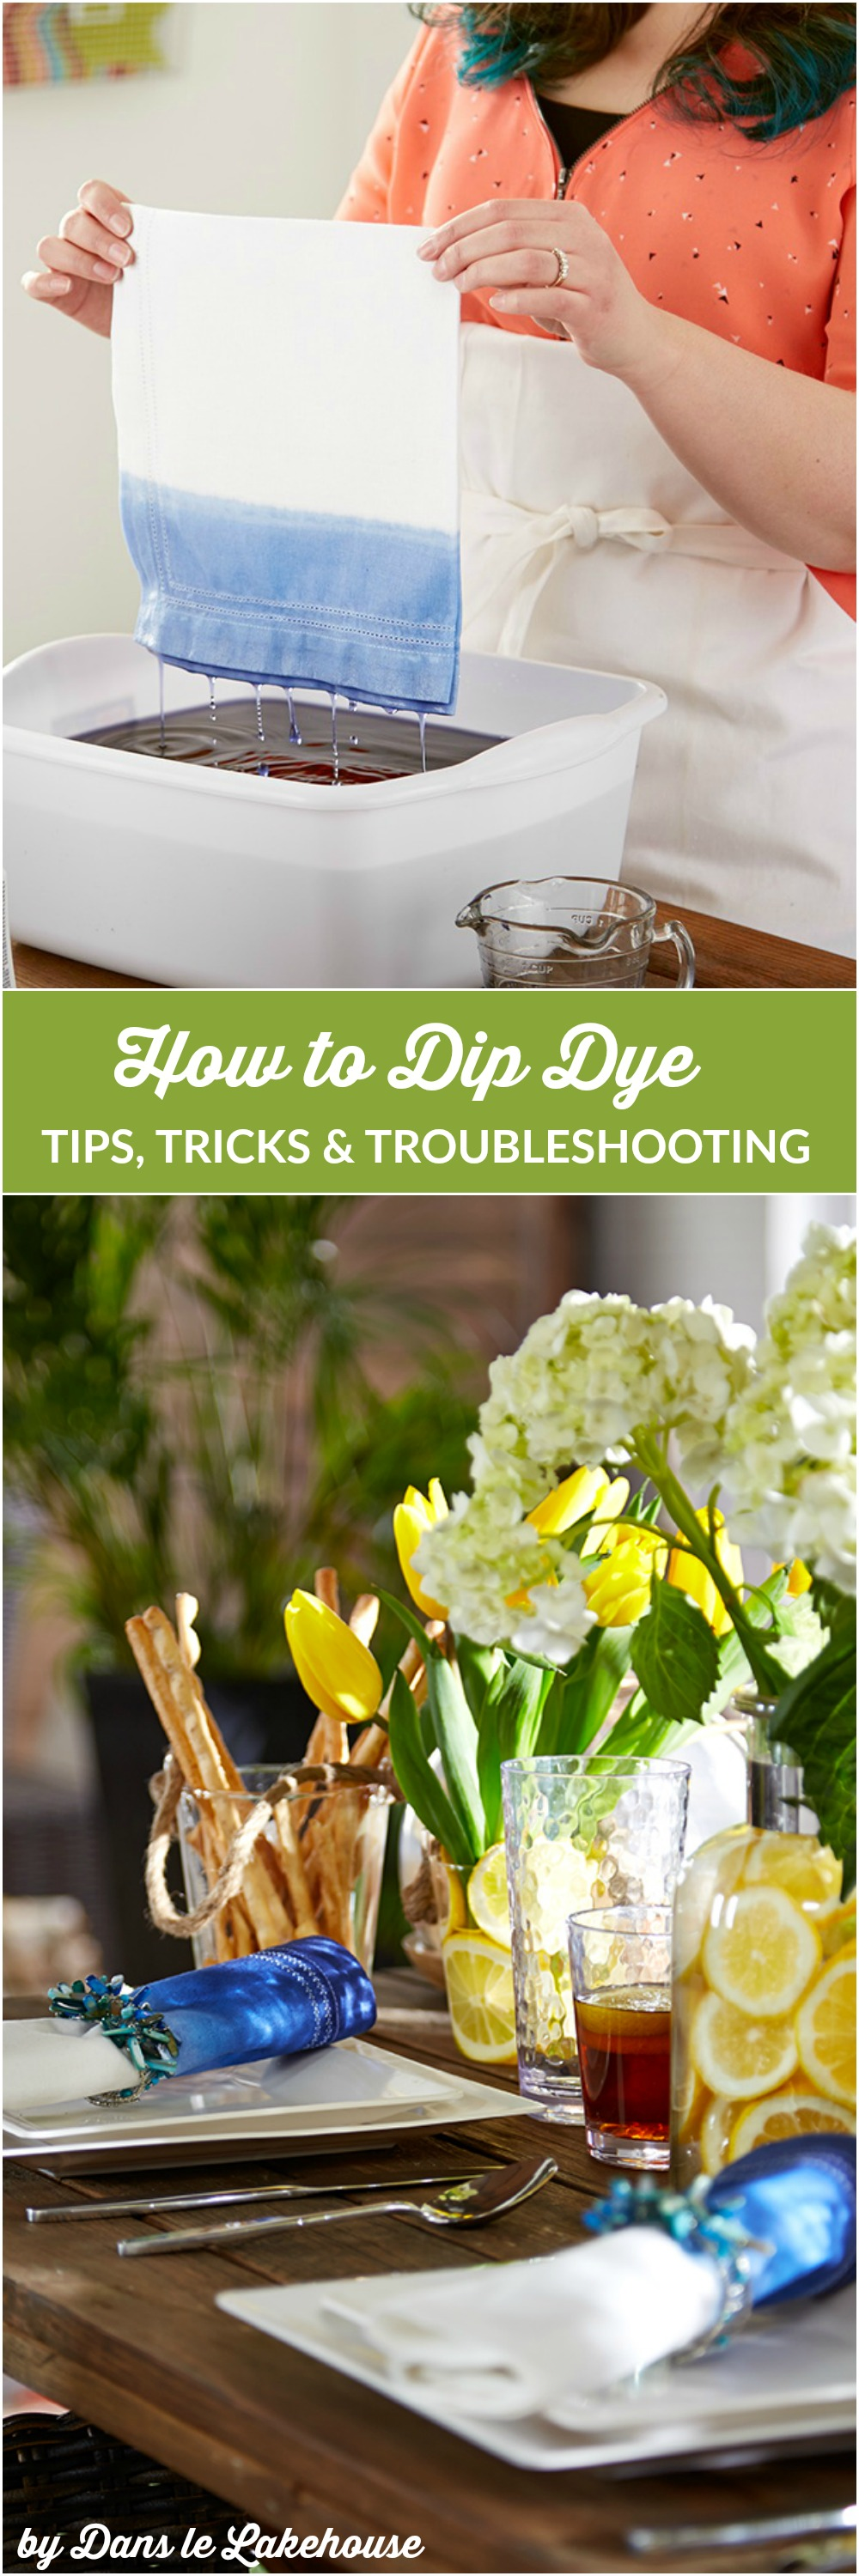 How to dip dye fabric: tips, tricks, and troubleshooting